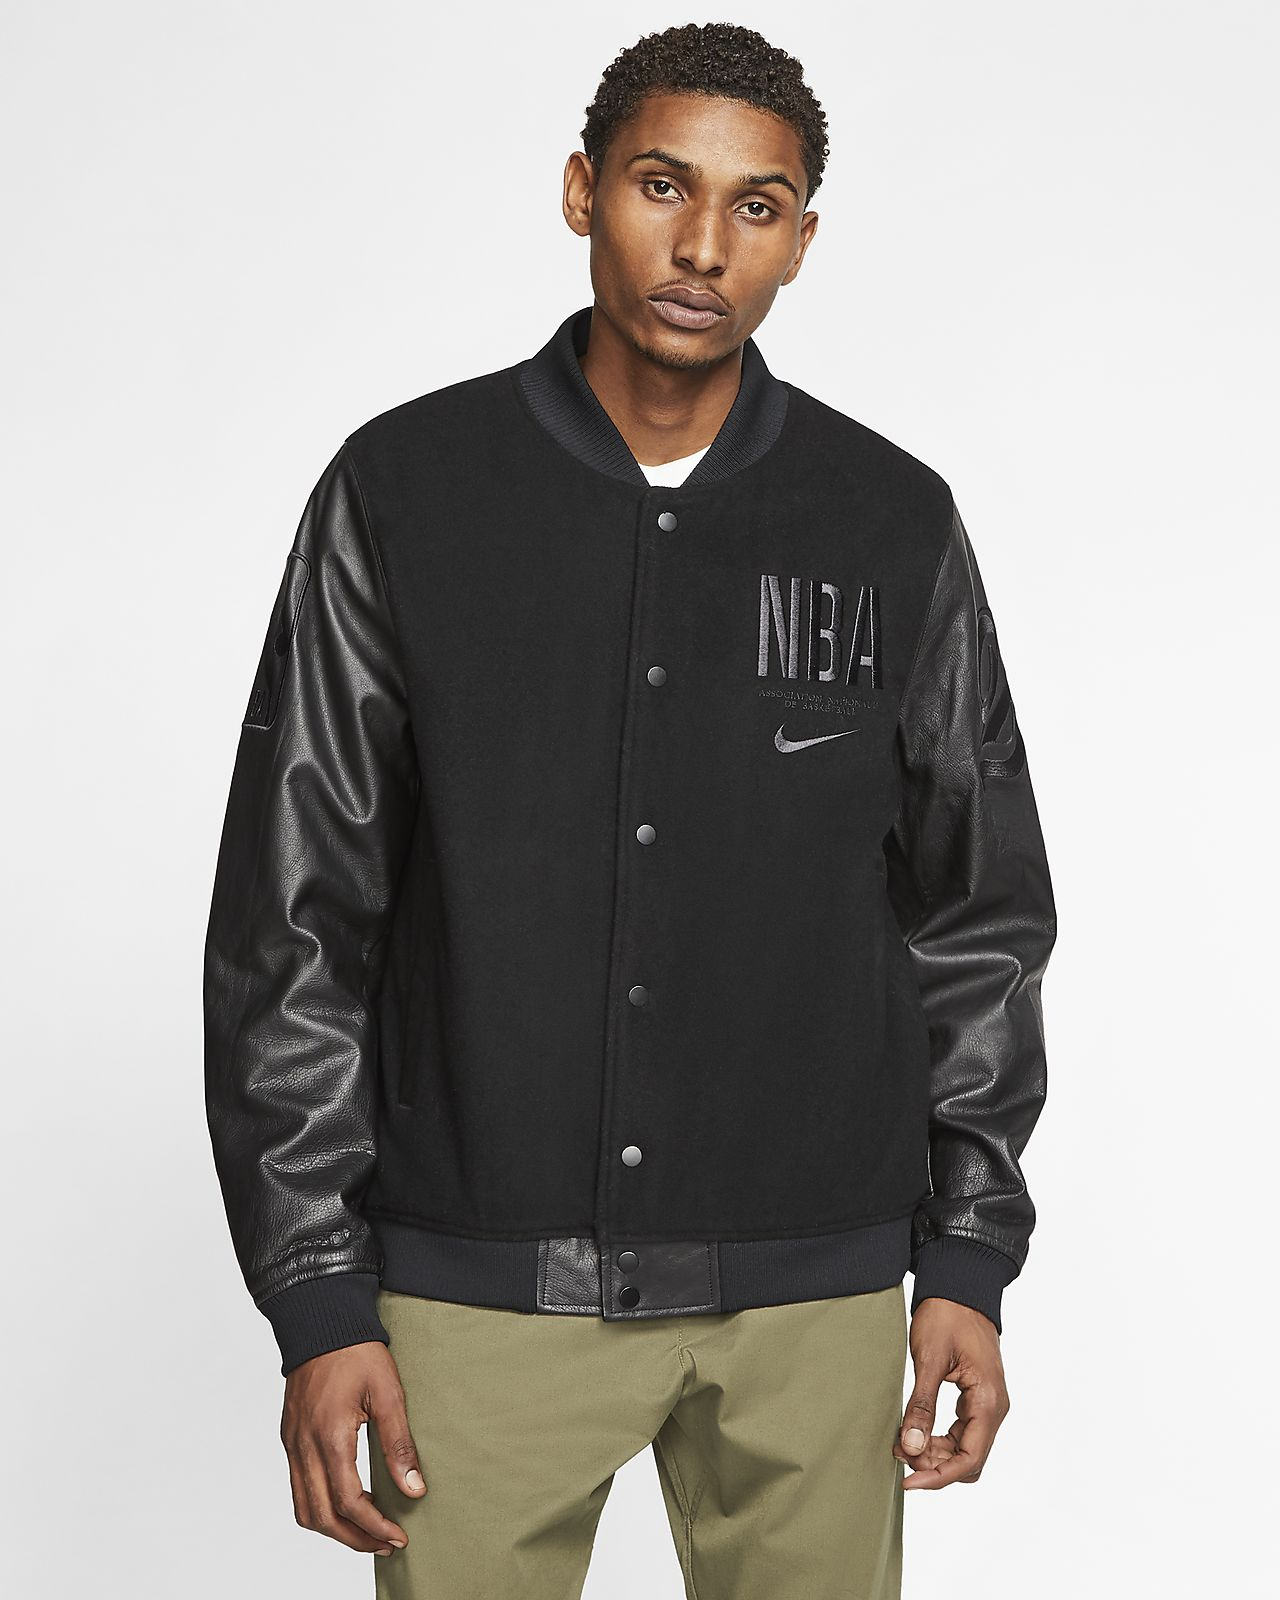 Nike Courtside 'Paris' Men's NBA Destroyer Jacket